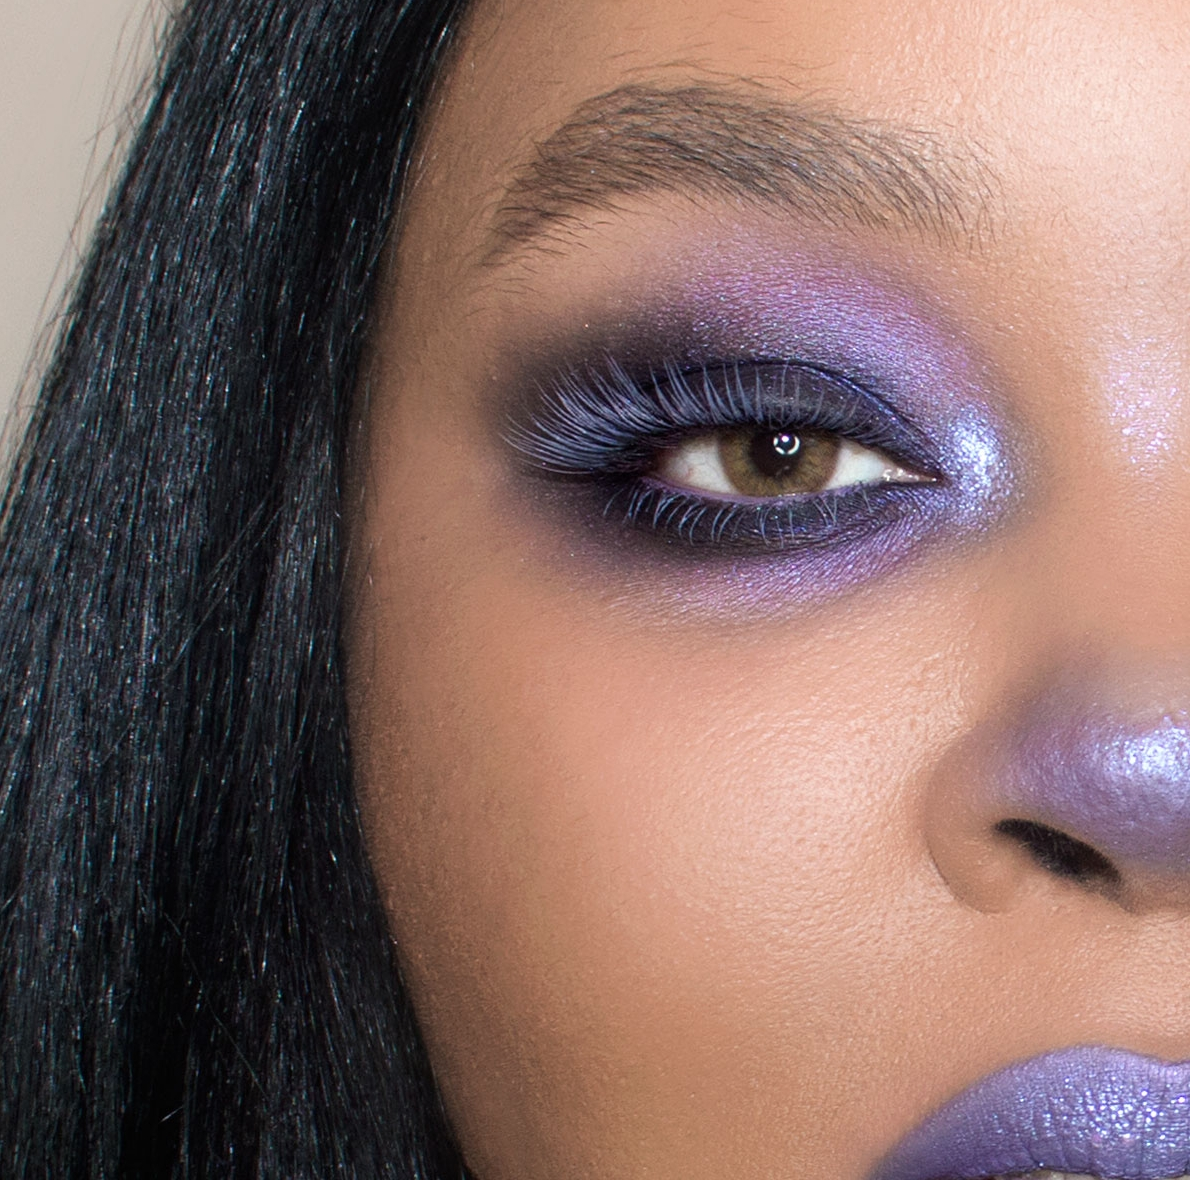 Kat Von D Everlasting Lip Liner Coven, Dramatic Purple Makeup